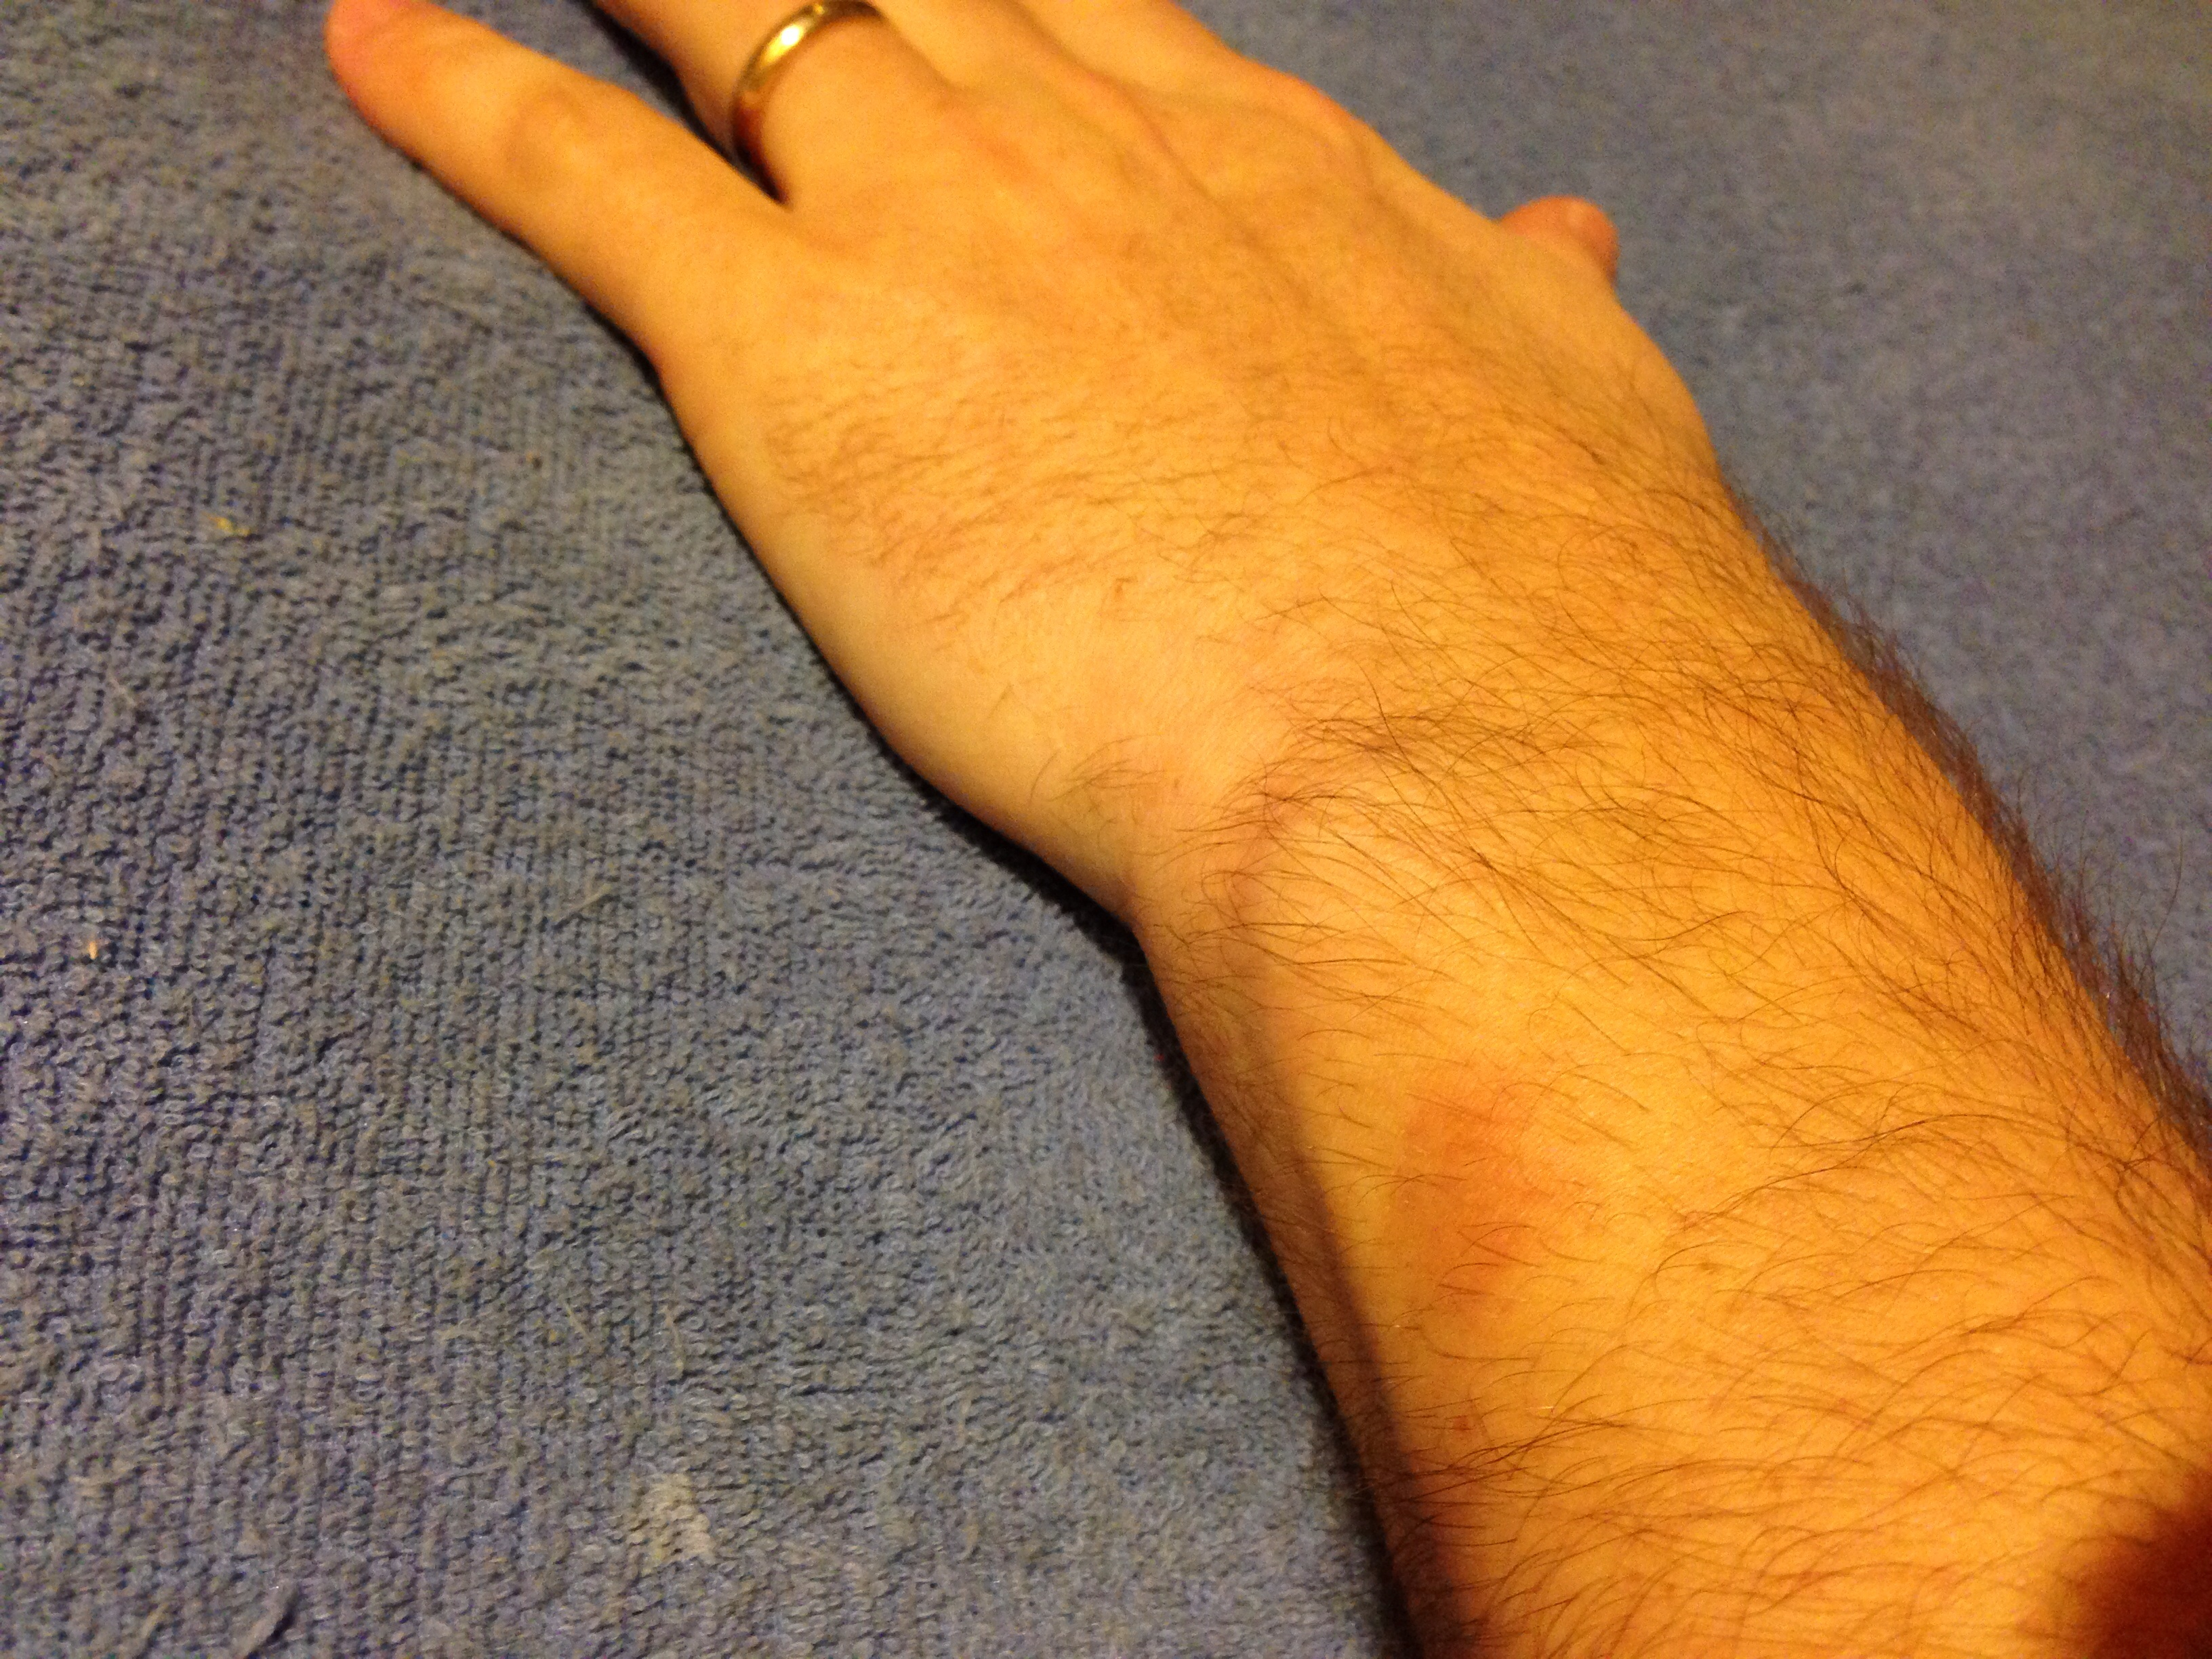 FitBit Force rash 9 days after I stopped wearing it